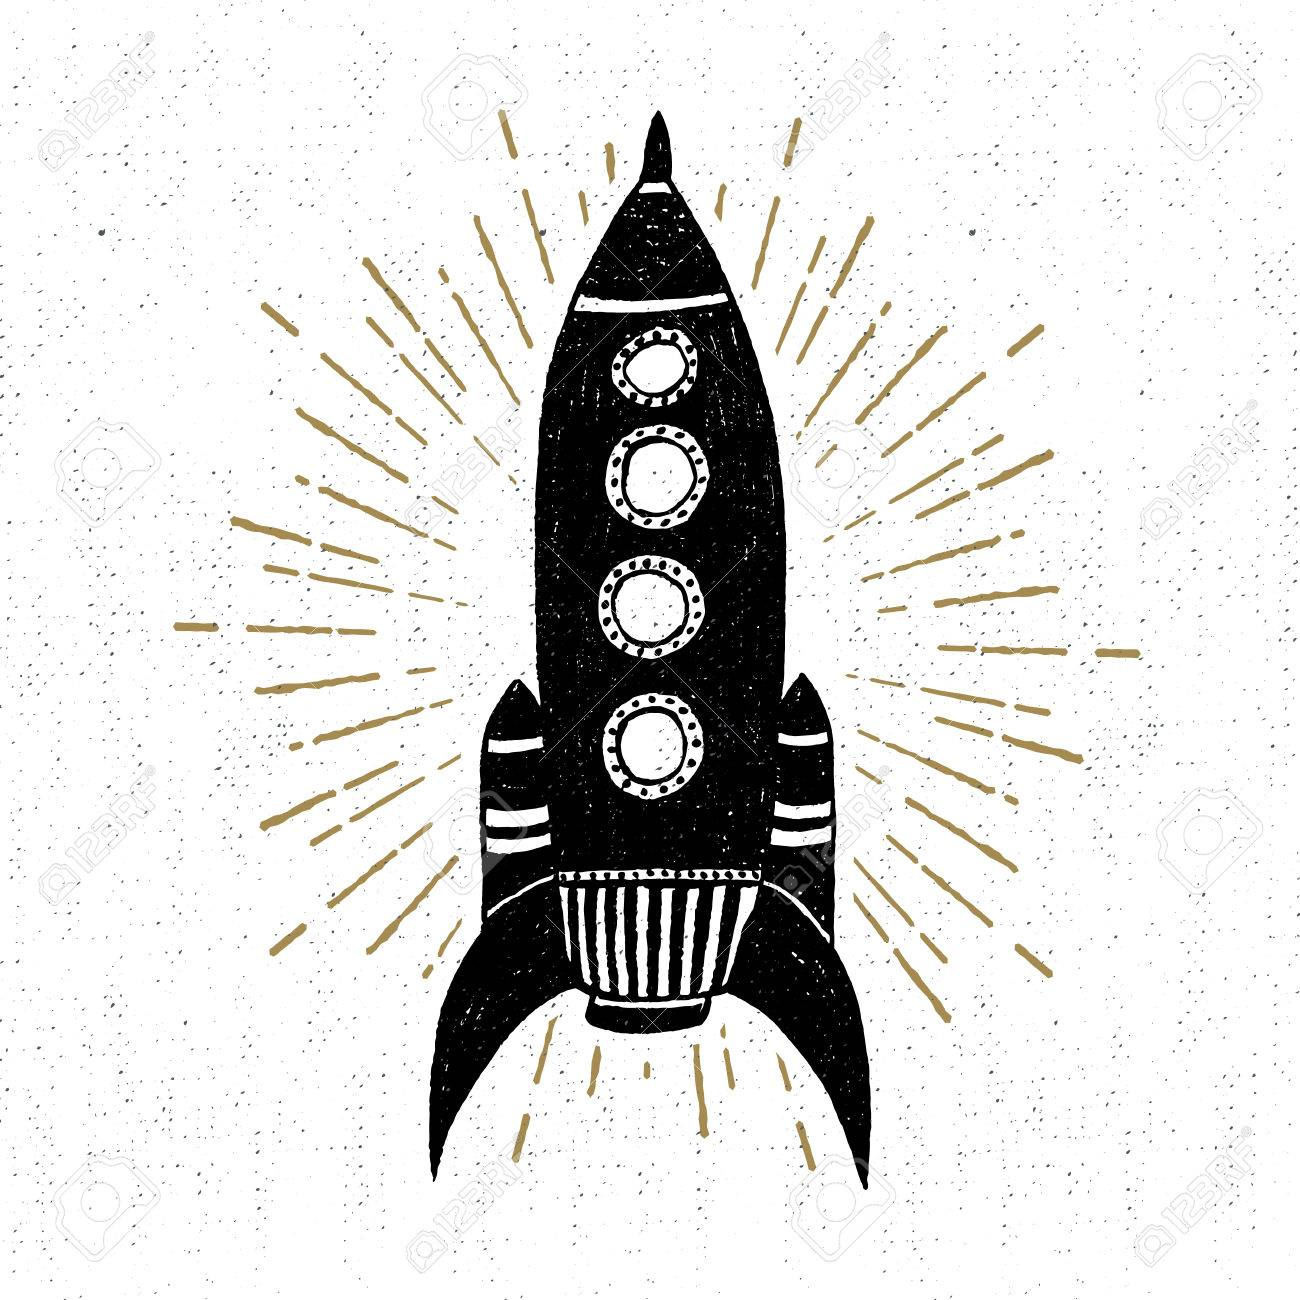 Hand drawn vintage icon with rocket vector illustration. - 53285834